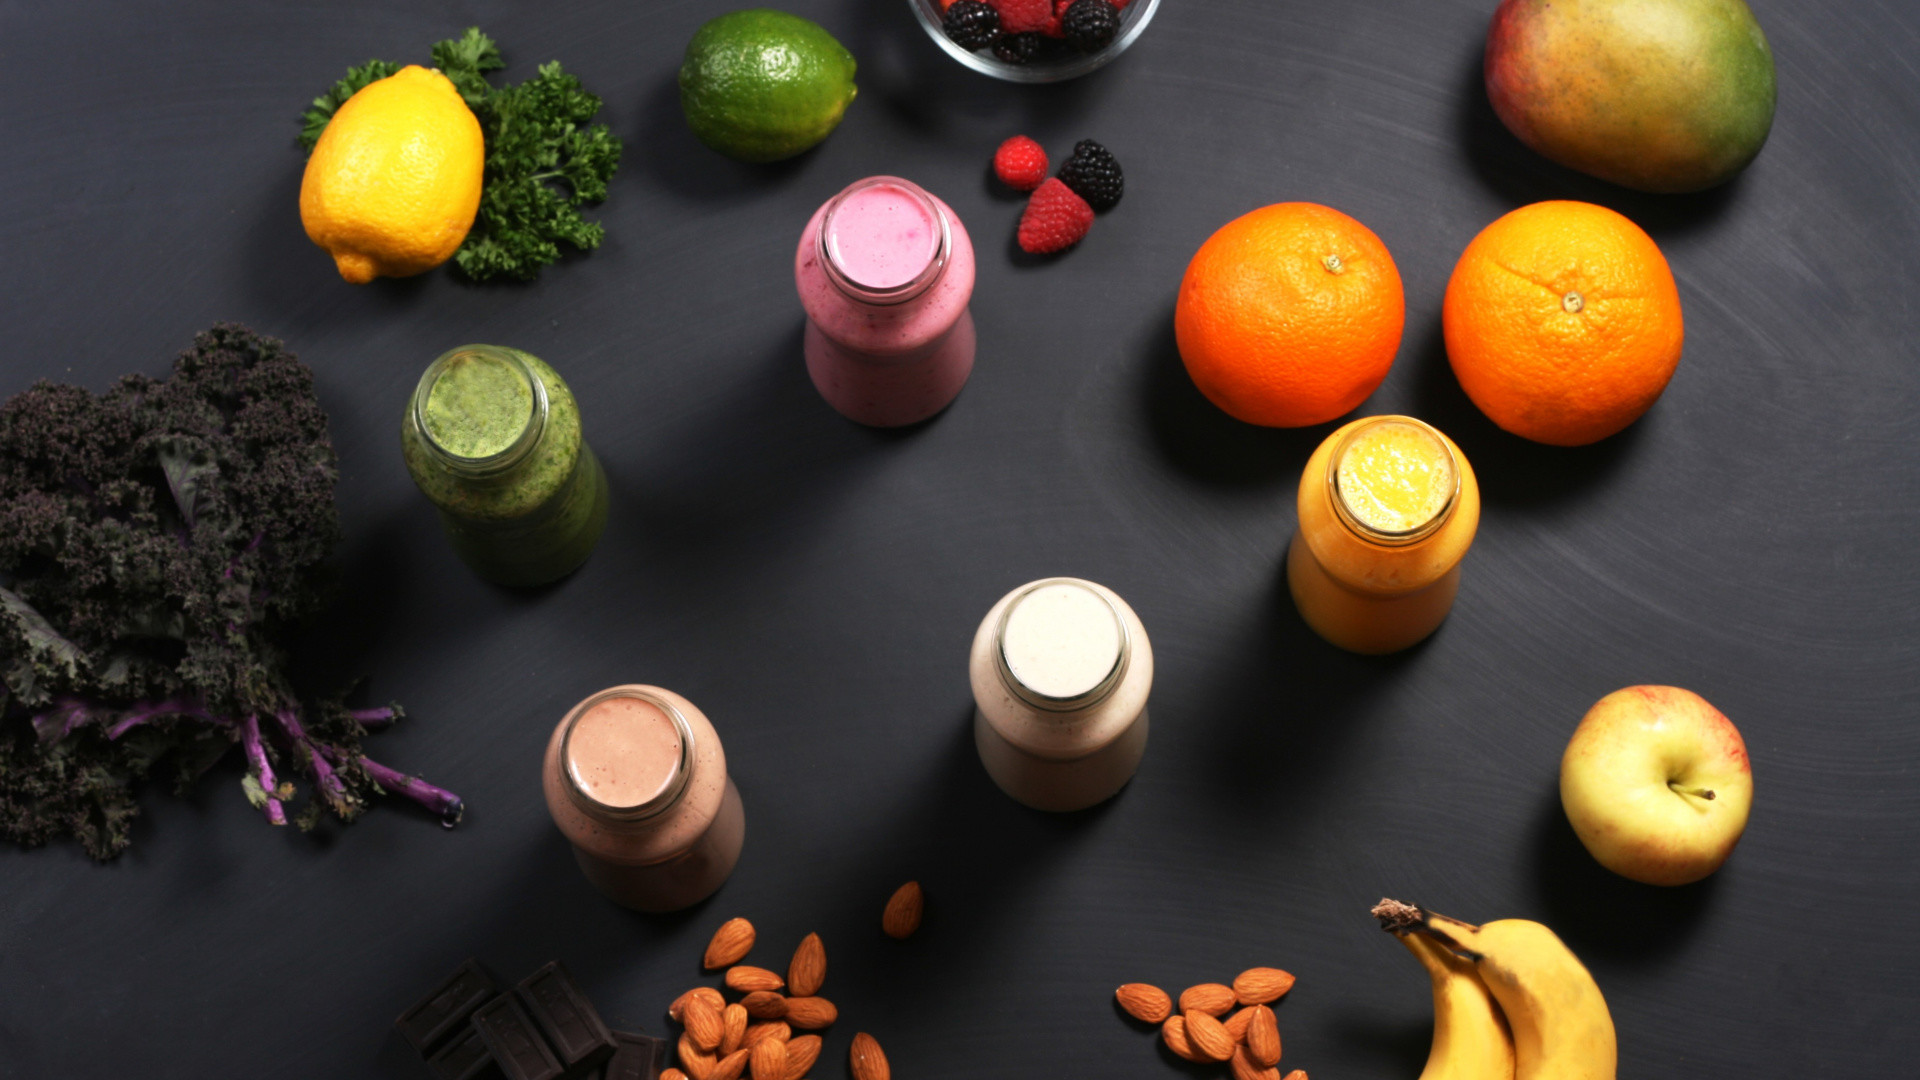 1920x1080  wallpaper Smoothies, fruits, banana, apple, orange, nuts,  chocolate,